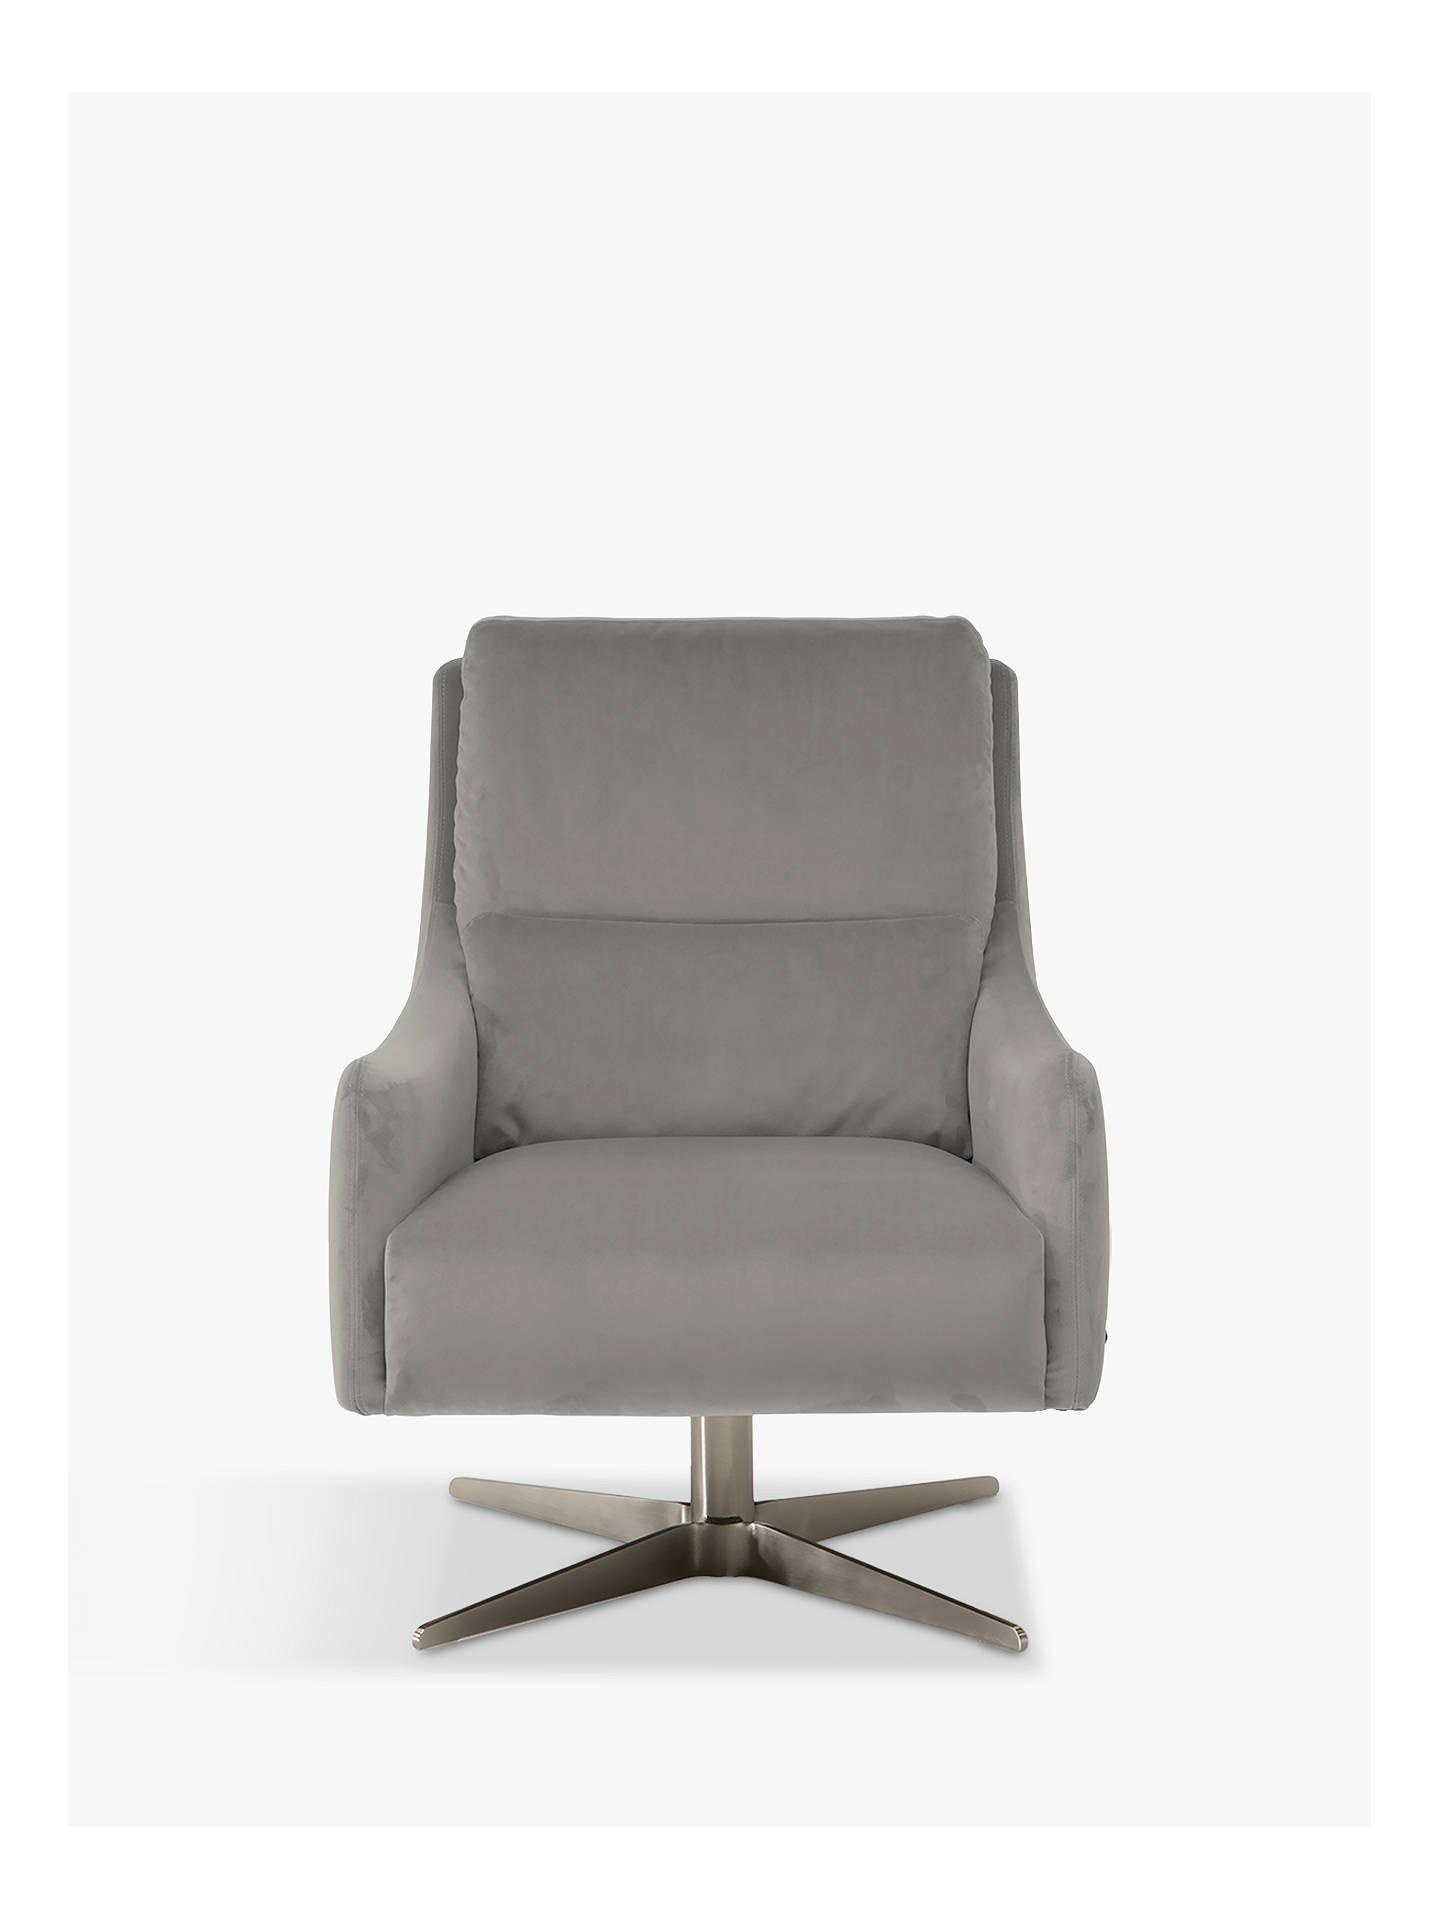 Natuzzi Gloria Fabric Swivel Armchair, Nickel Base at John ...